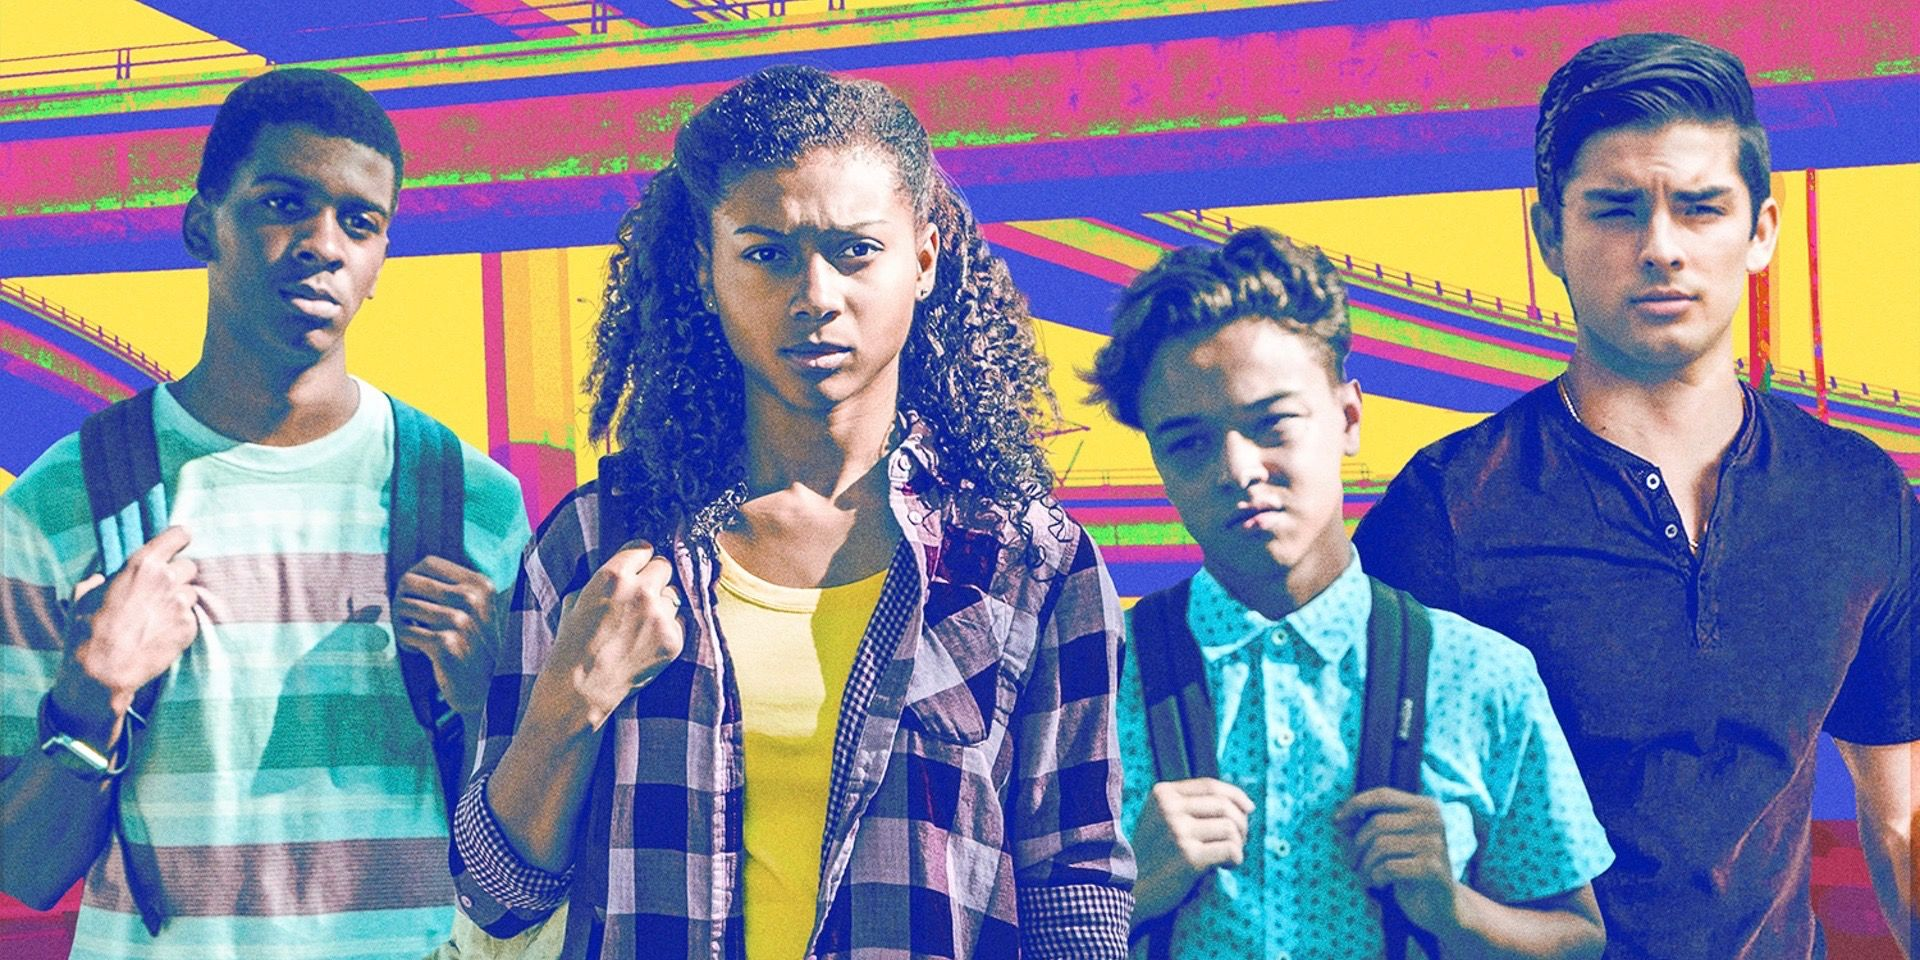 On My Block Season 2 Premiere Date Announced In New Video